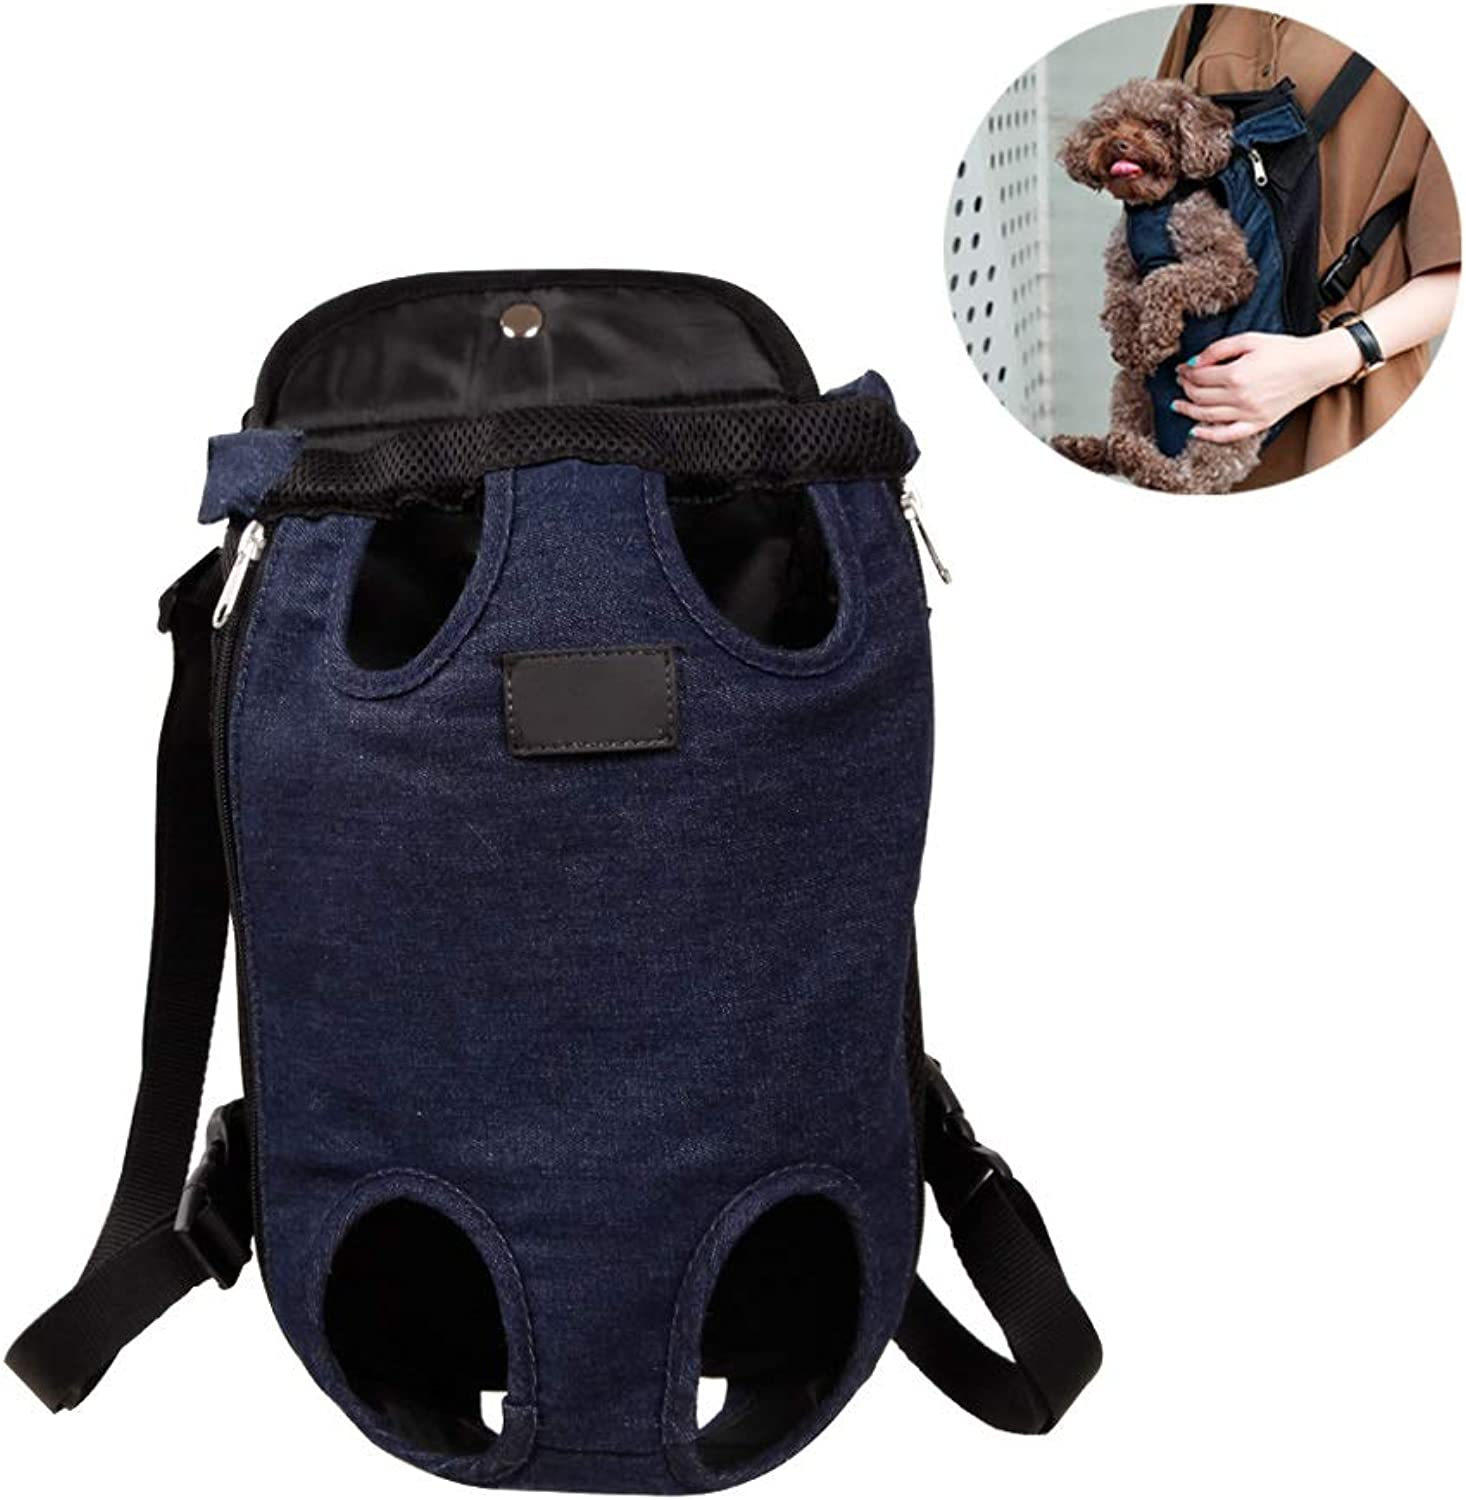 Denim Front Kangaroo Pouch Dog Carrier, Adjustable and Legs Out Pet Backpack Carrier, for Walking, Travel, Hiking, Camping (Size   M)